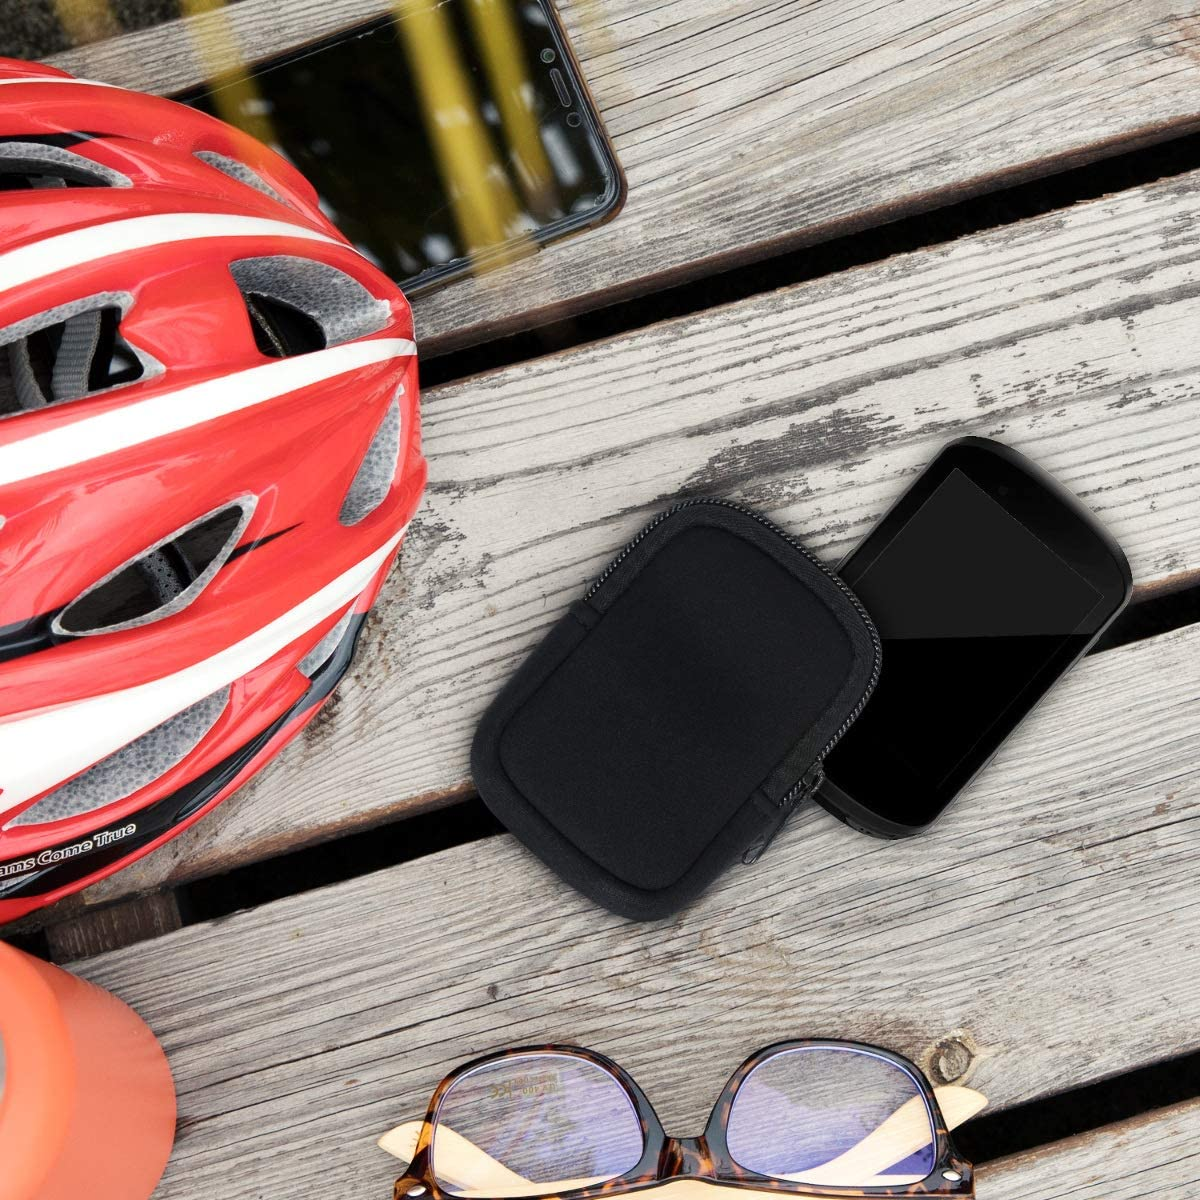 Protective Zippered Pouch Holder for Bike GPS kwmobile Case Compatible with Garmin Edge 530//830 Black